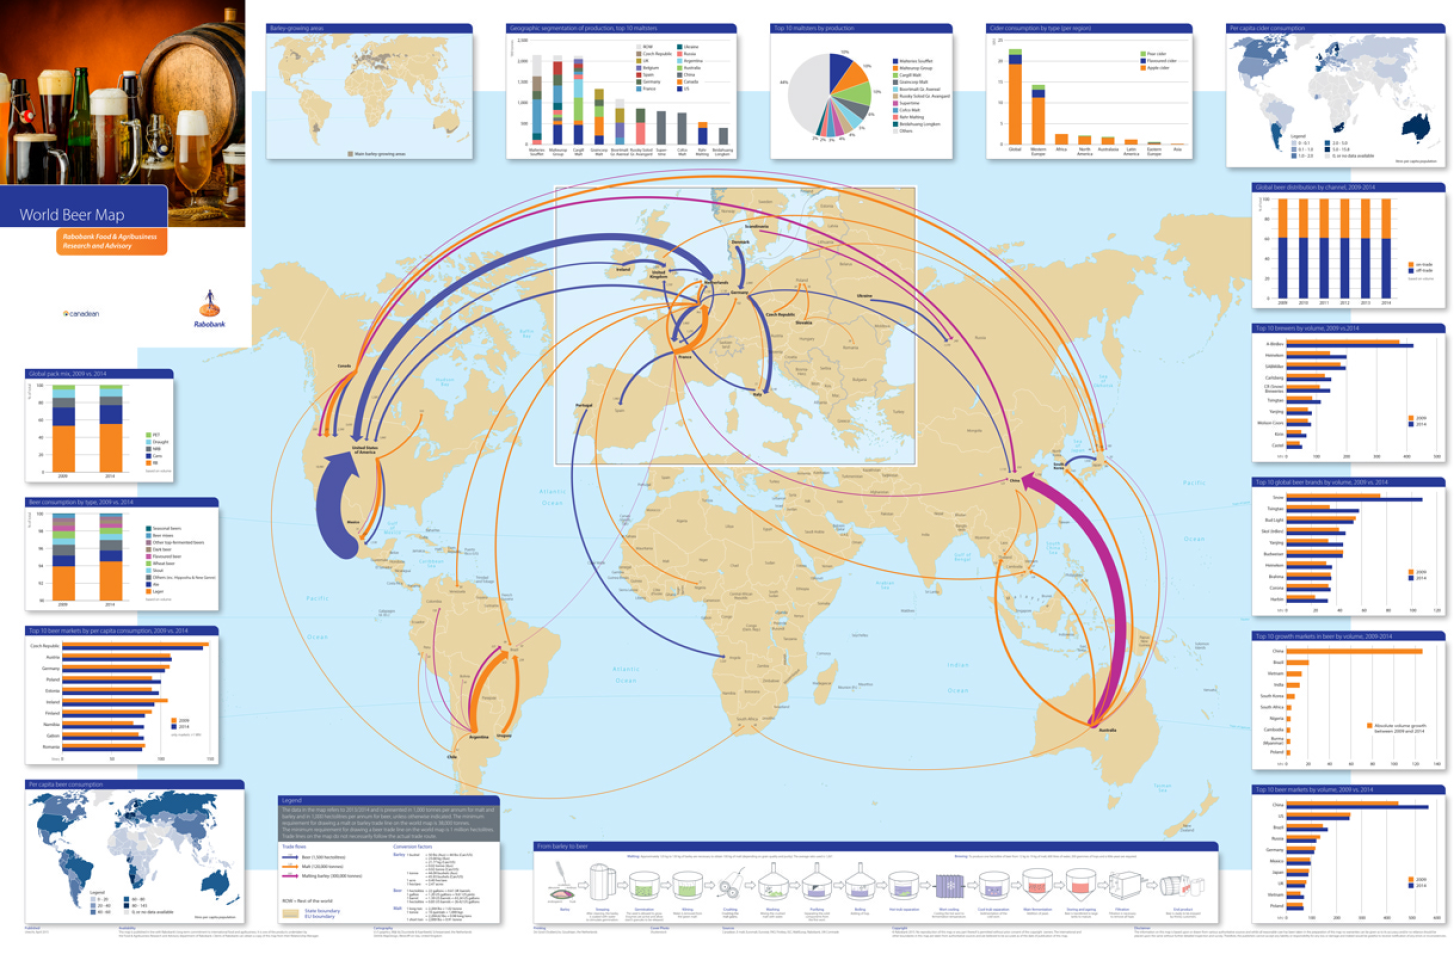 visualisation of global beer trade flows